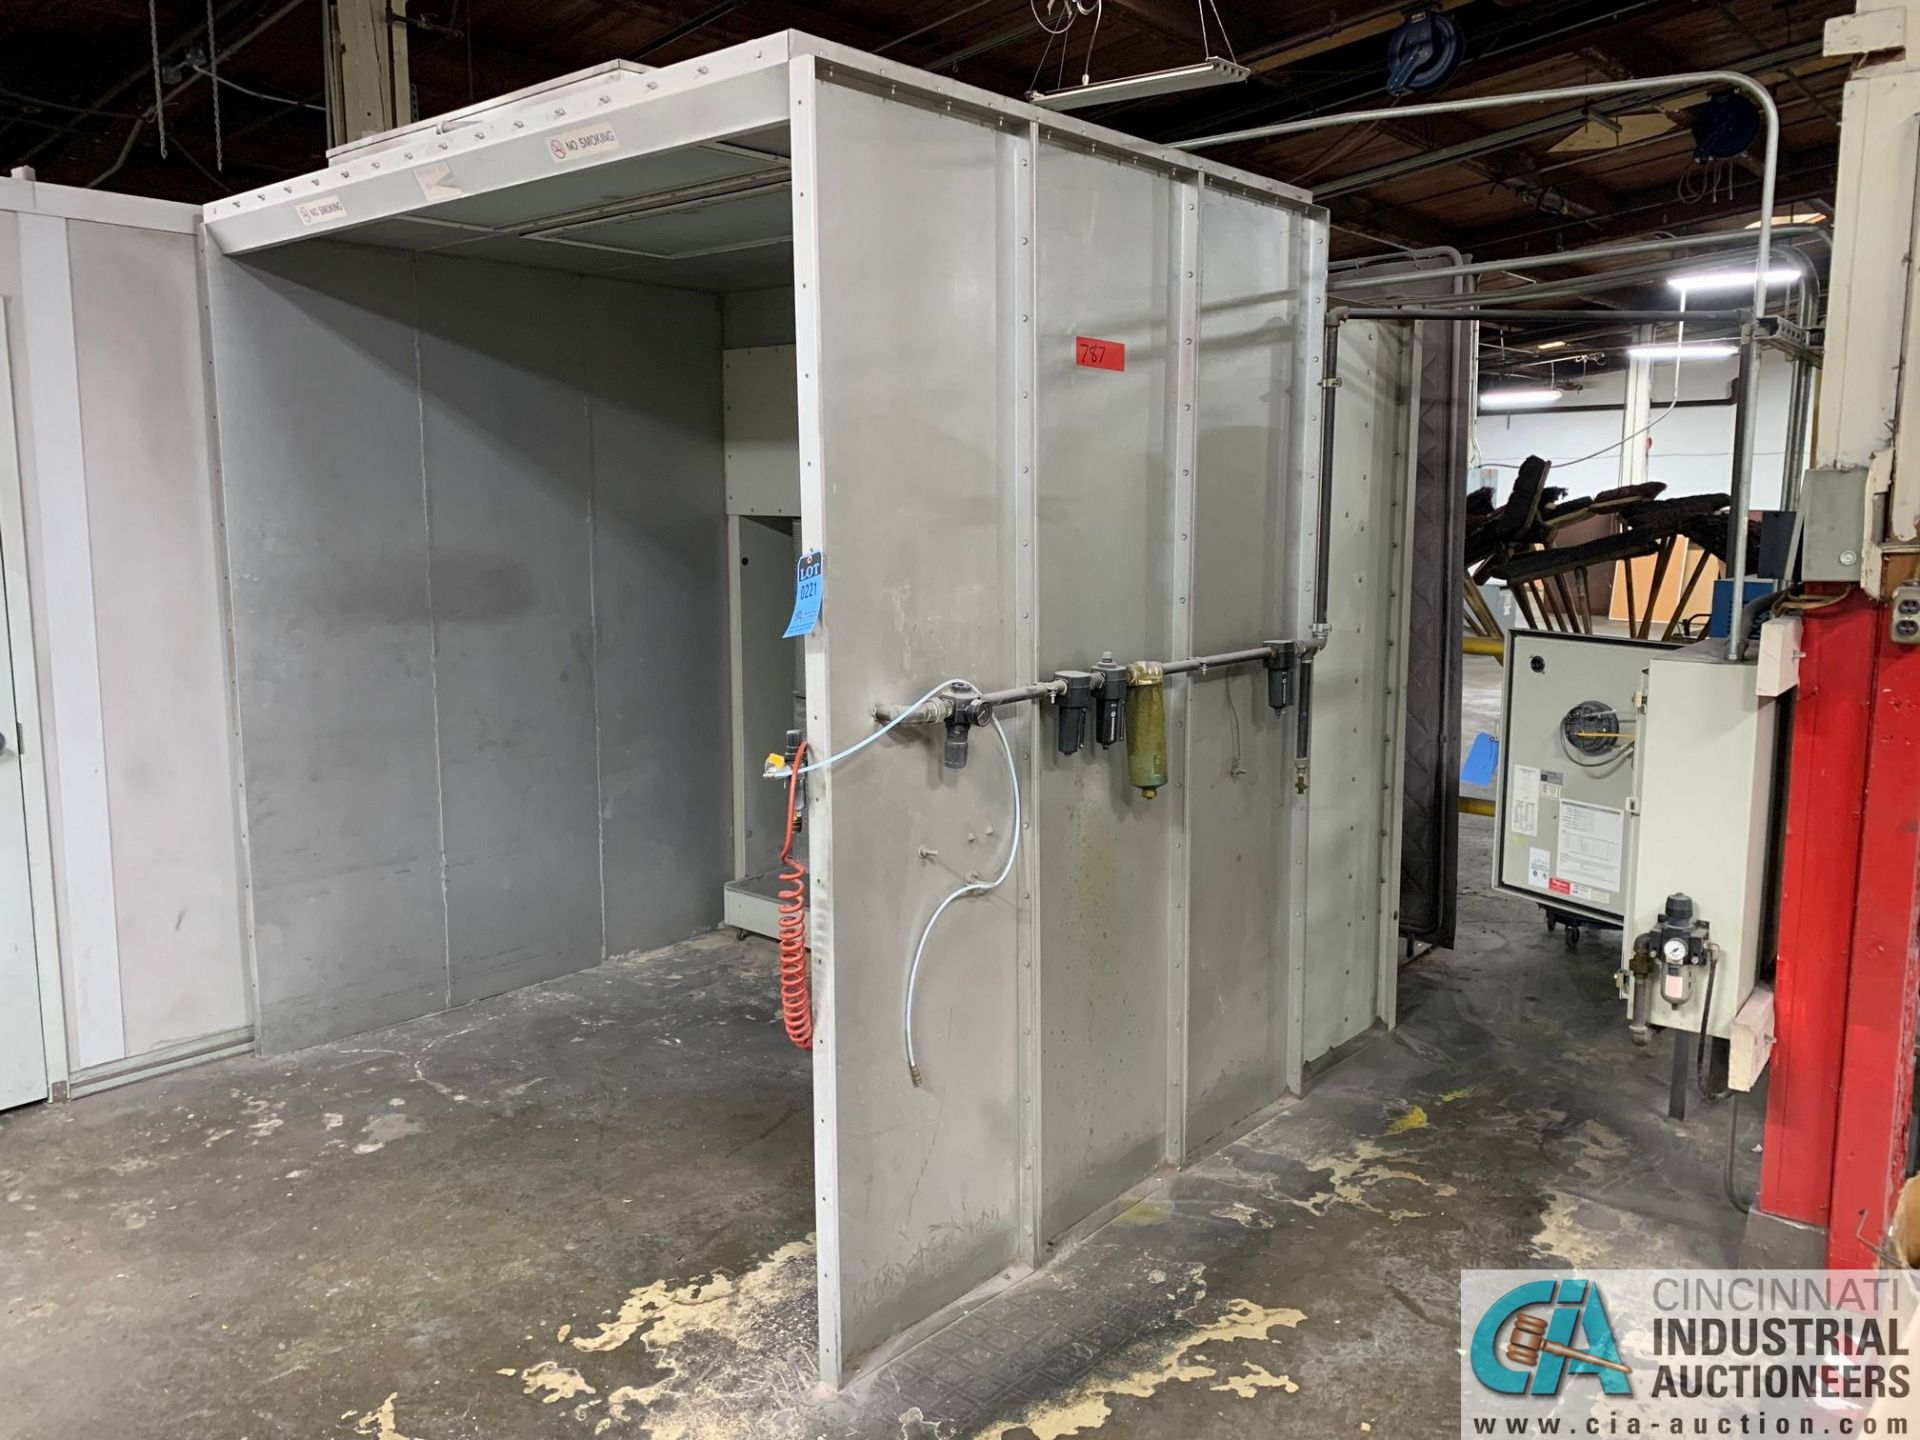 "8' X 6' X 90"" DEIMCO PWI-08-08-06-2-3K POWDER COAT BOOTH - Approx. $30,000 replacement cost"